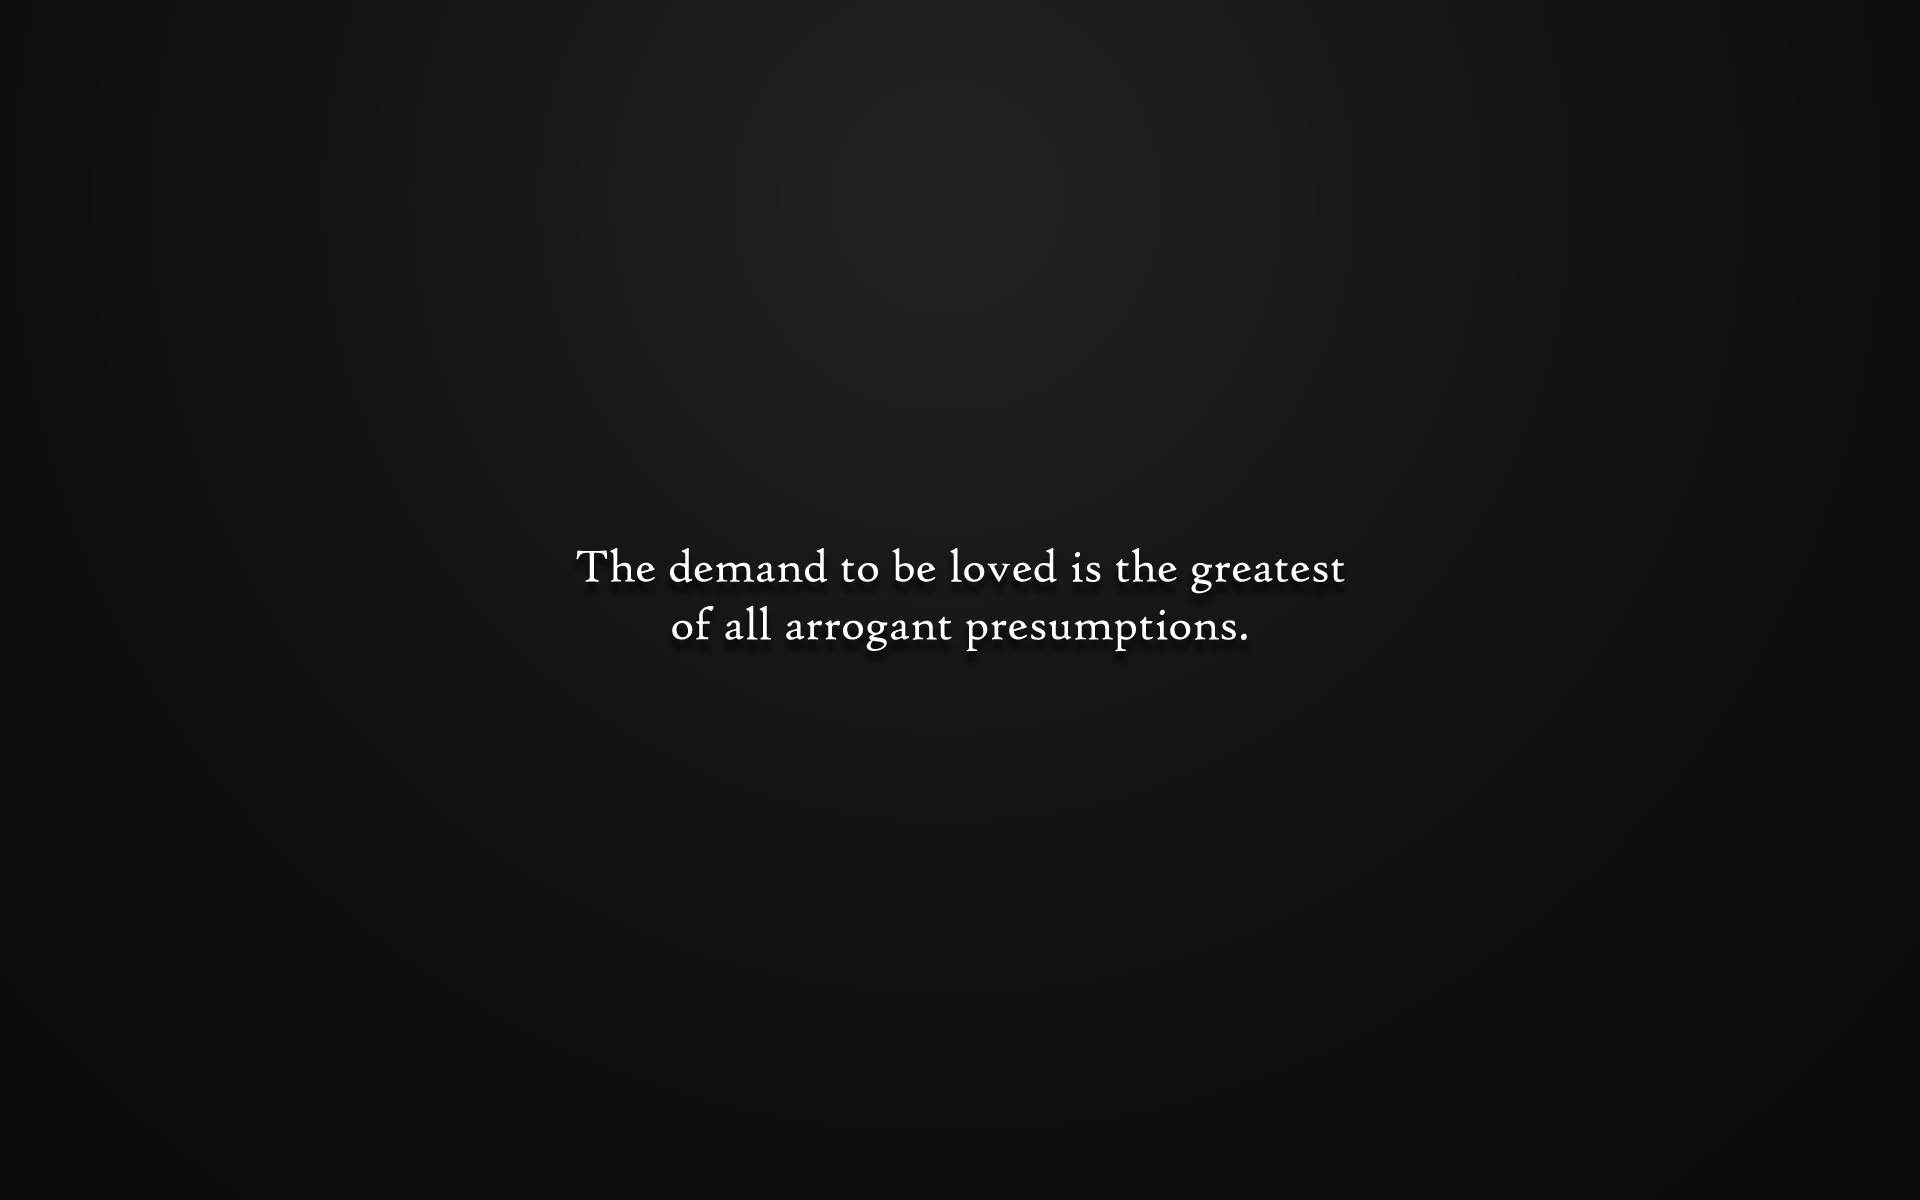 Free Download Hd Sad Wallpapers With Quotes 1920x1200